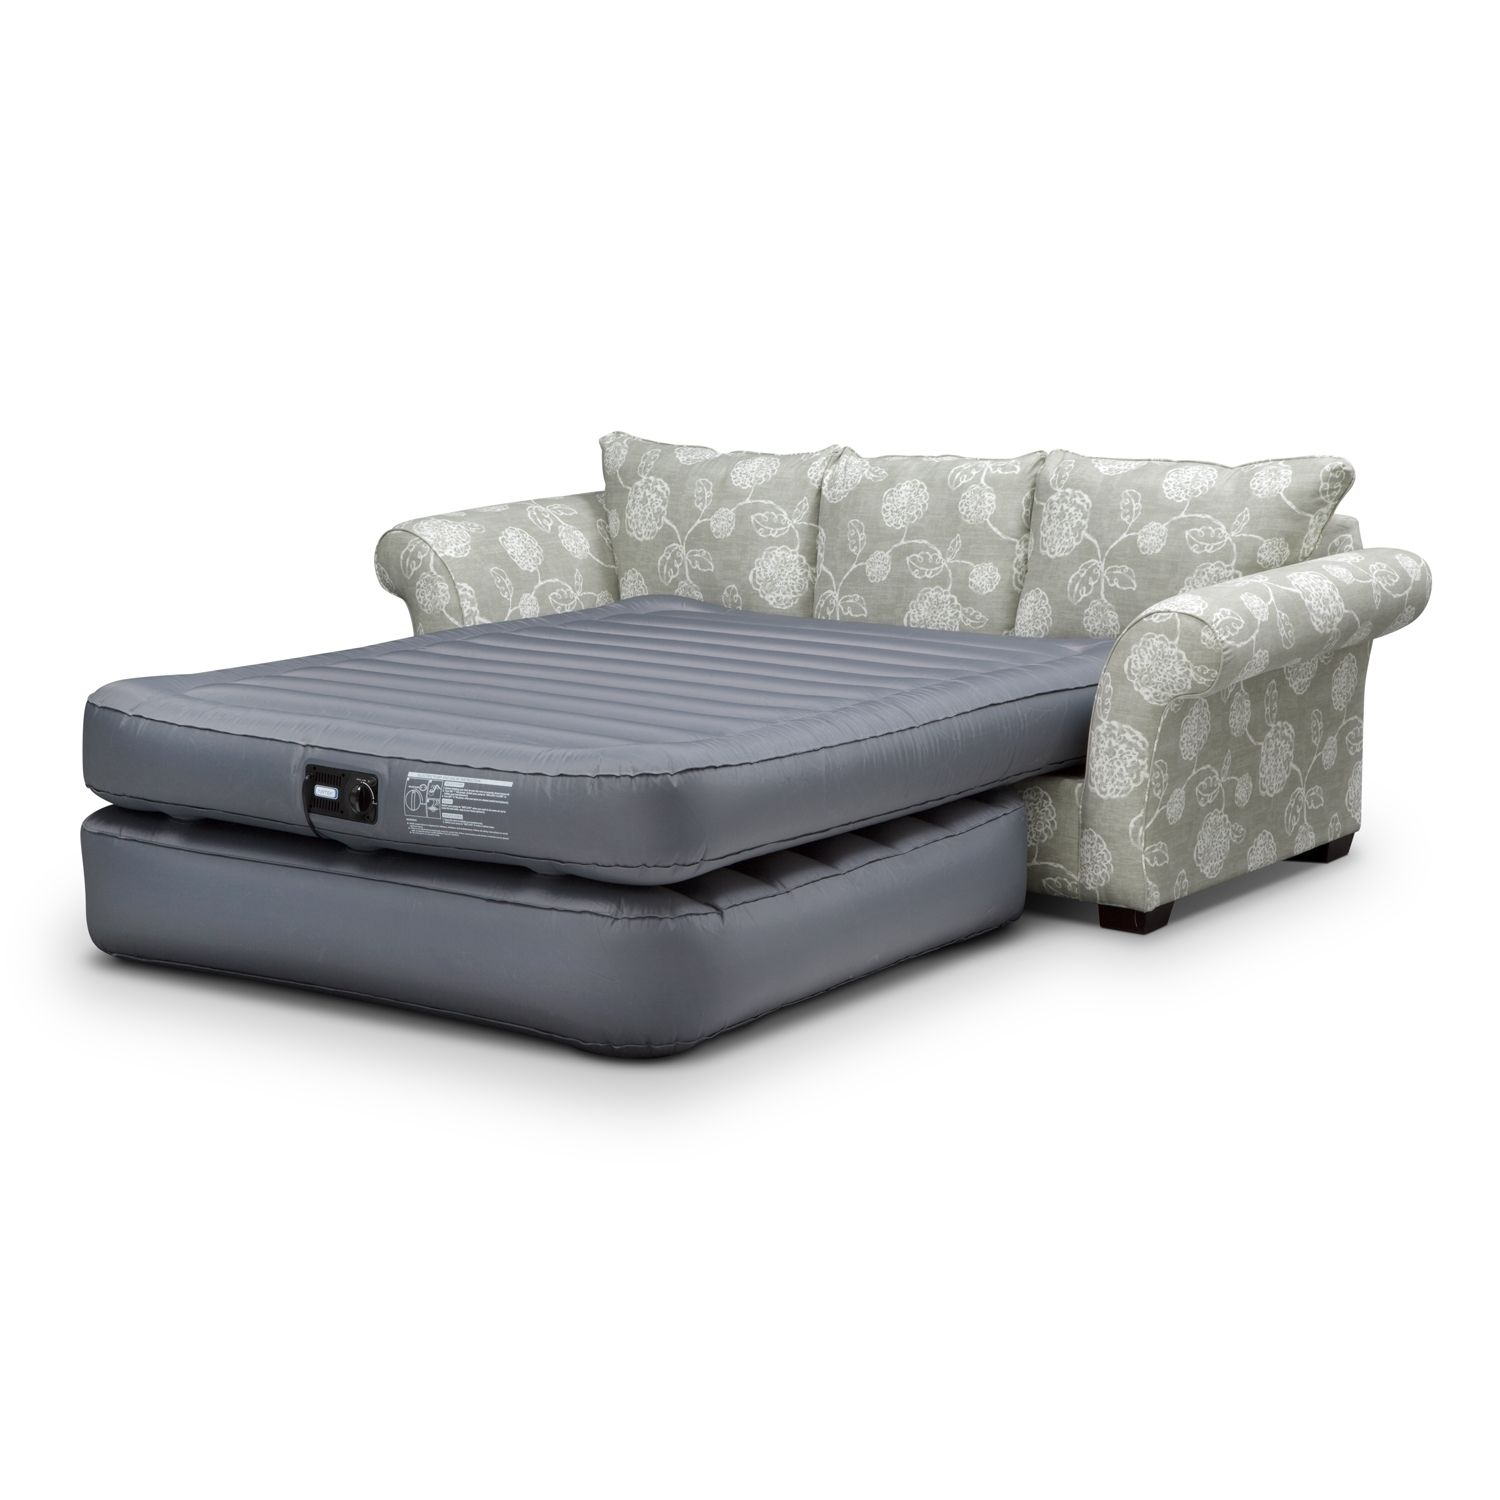 Air Mattress For Rv Sleeper Sofa Air Mattress Bedroom Guest Rooms